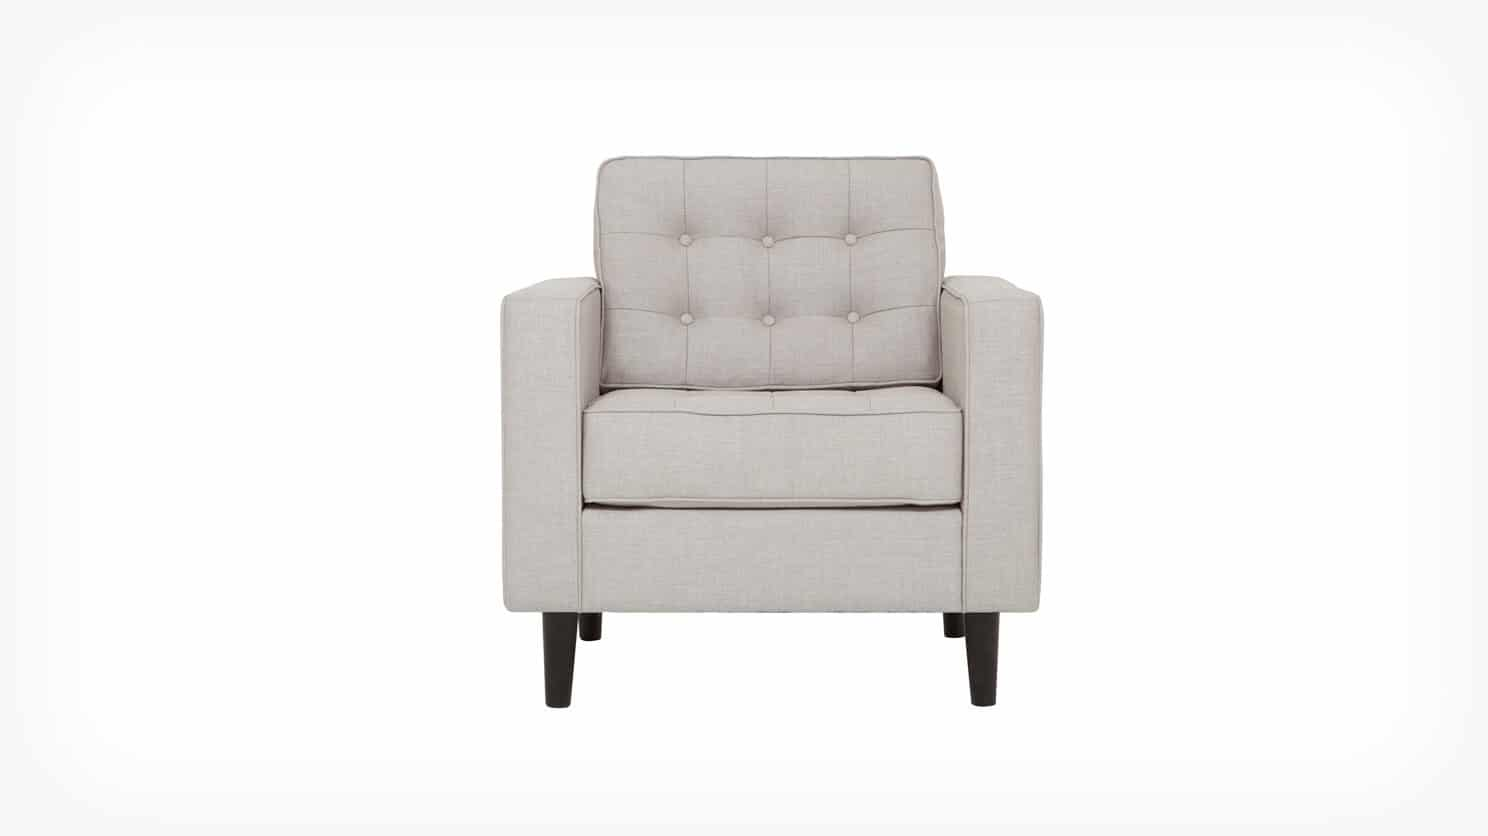 30095 02 1 chairs reverie chair polo grey front